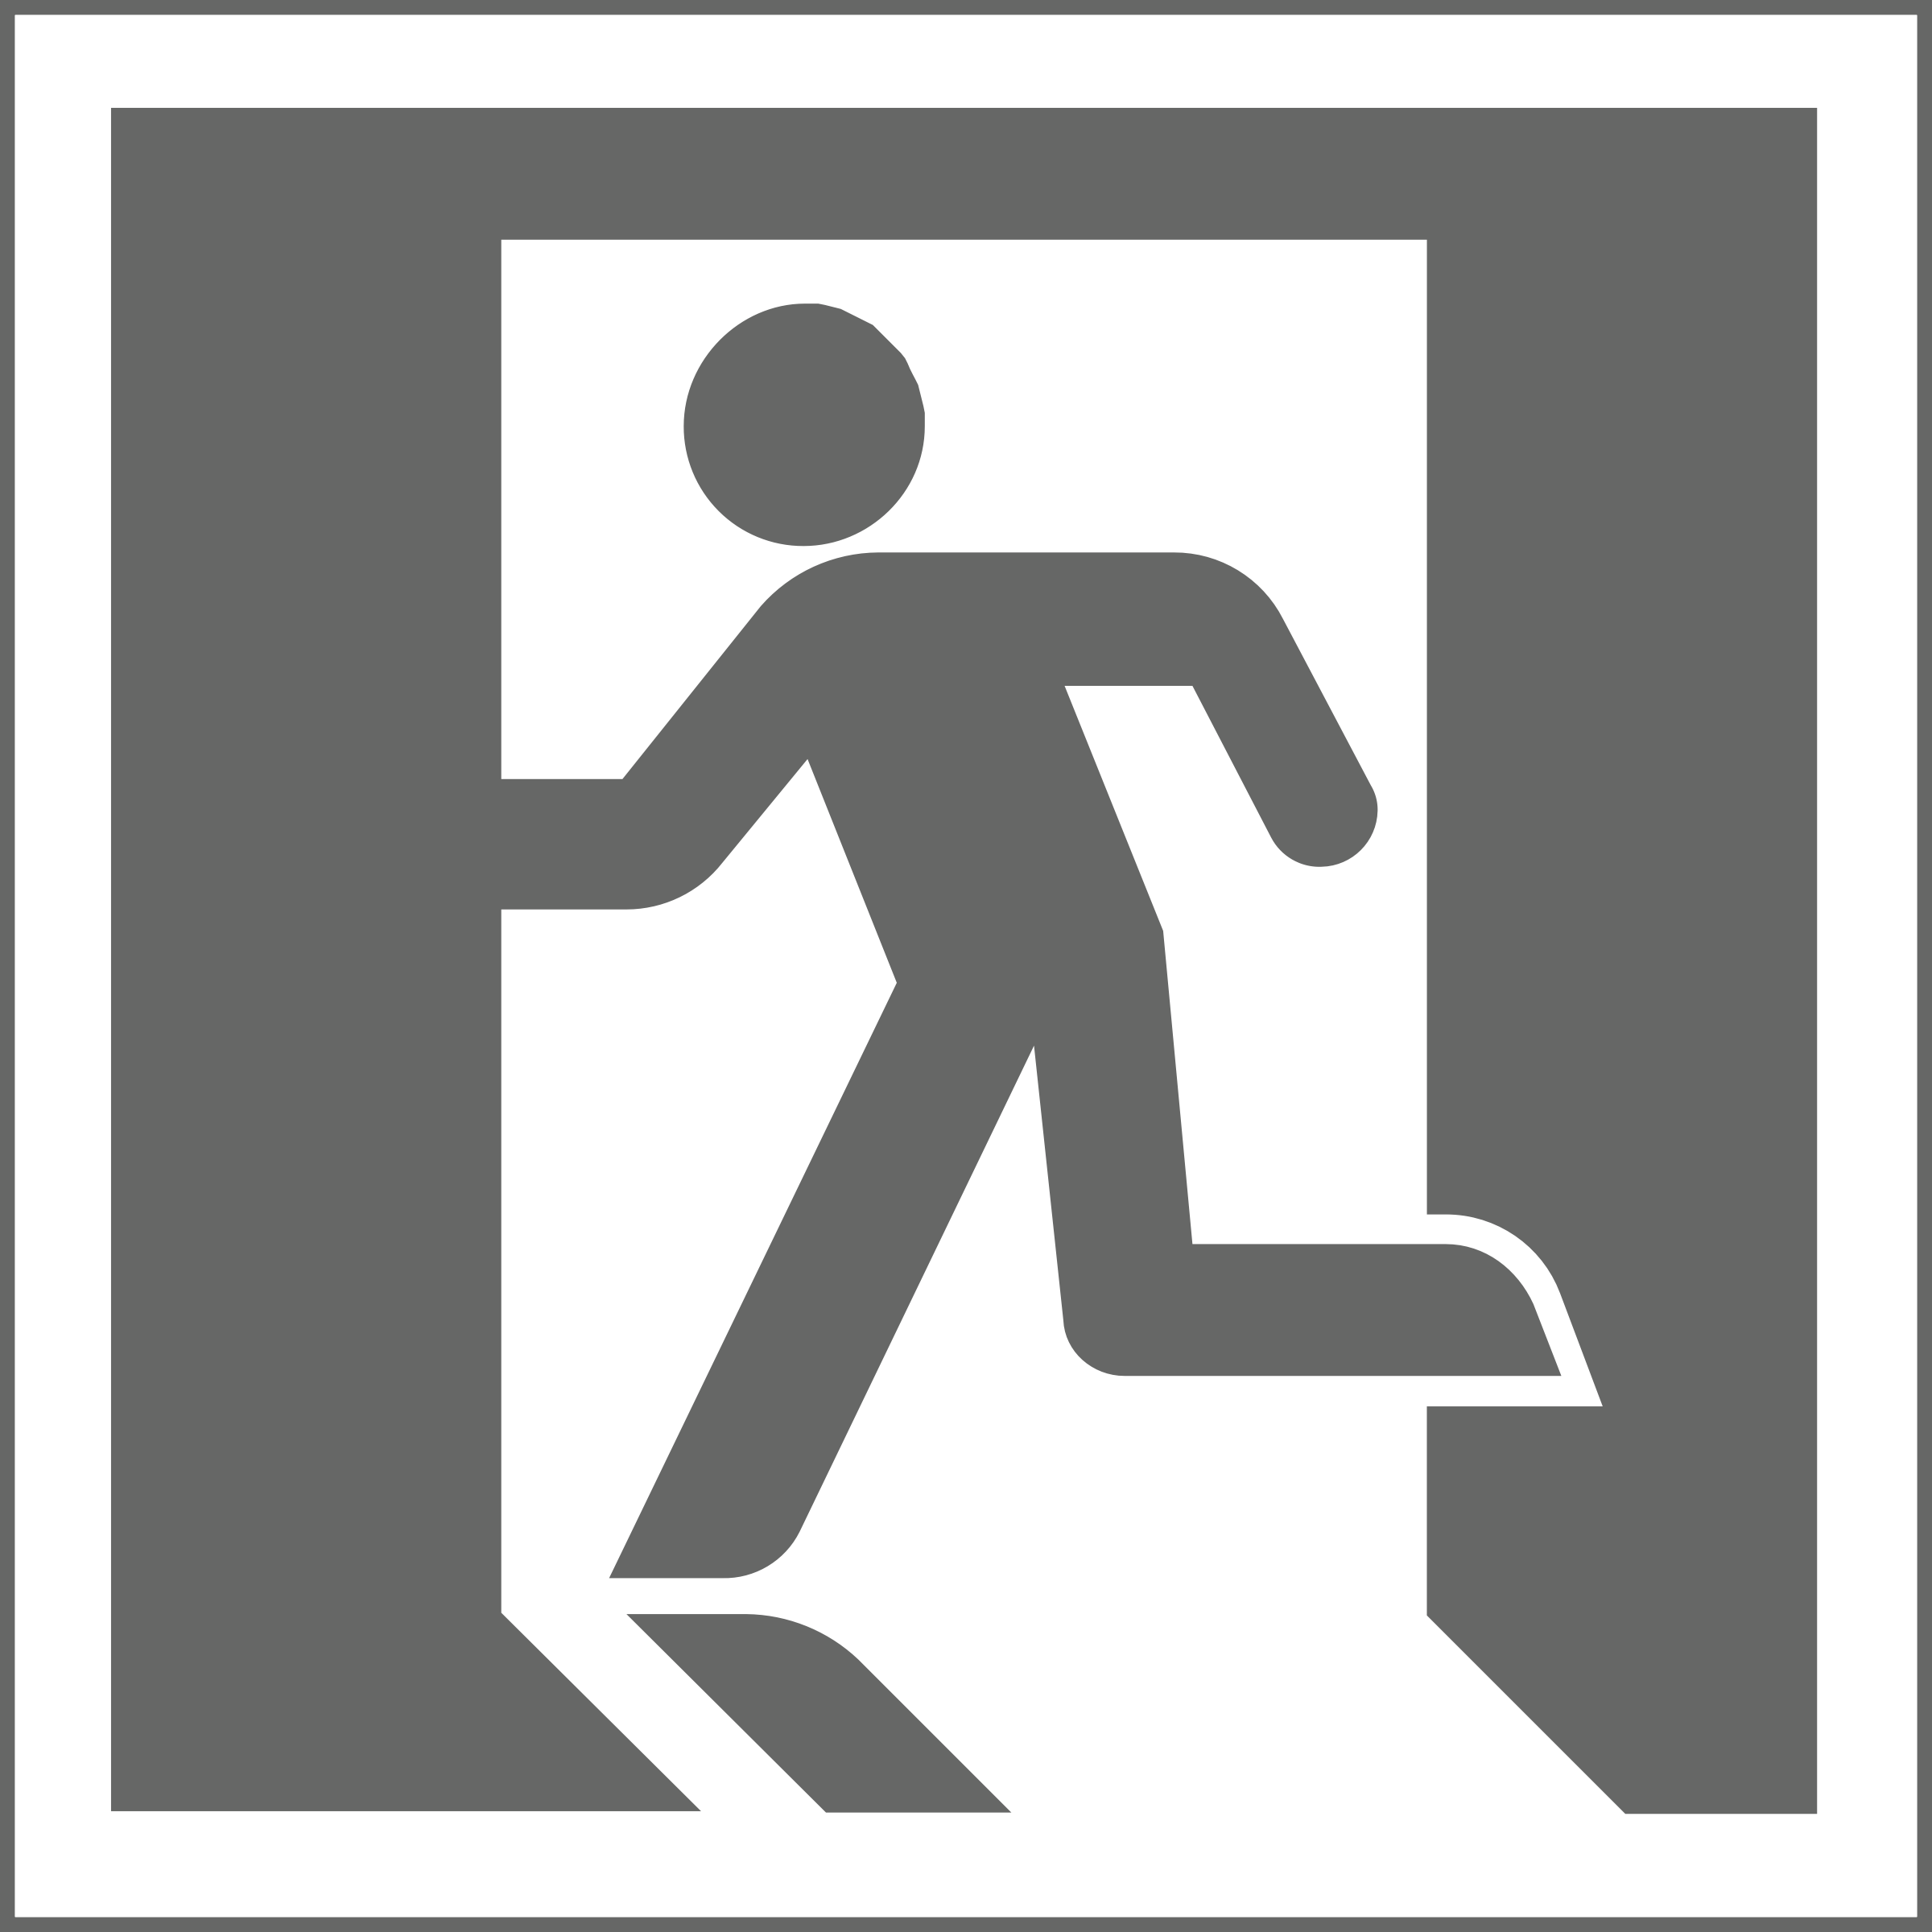 Icon: Grey on White Square - Variation of Yukio Ota's ISO Standard Japanese Exit Sign by mrjeremiahross